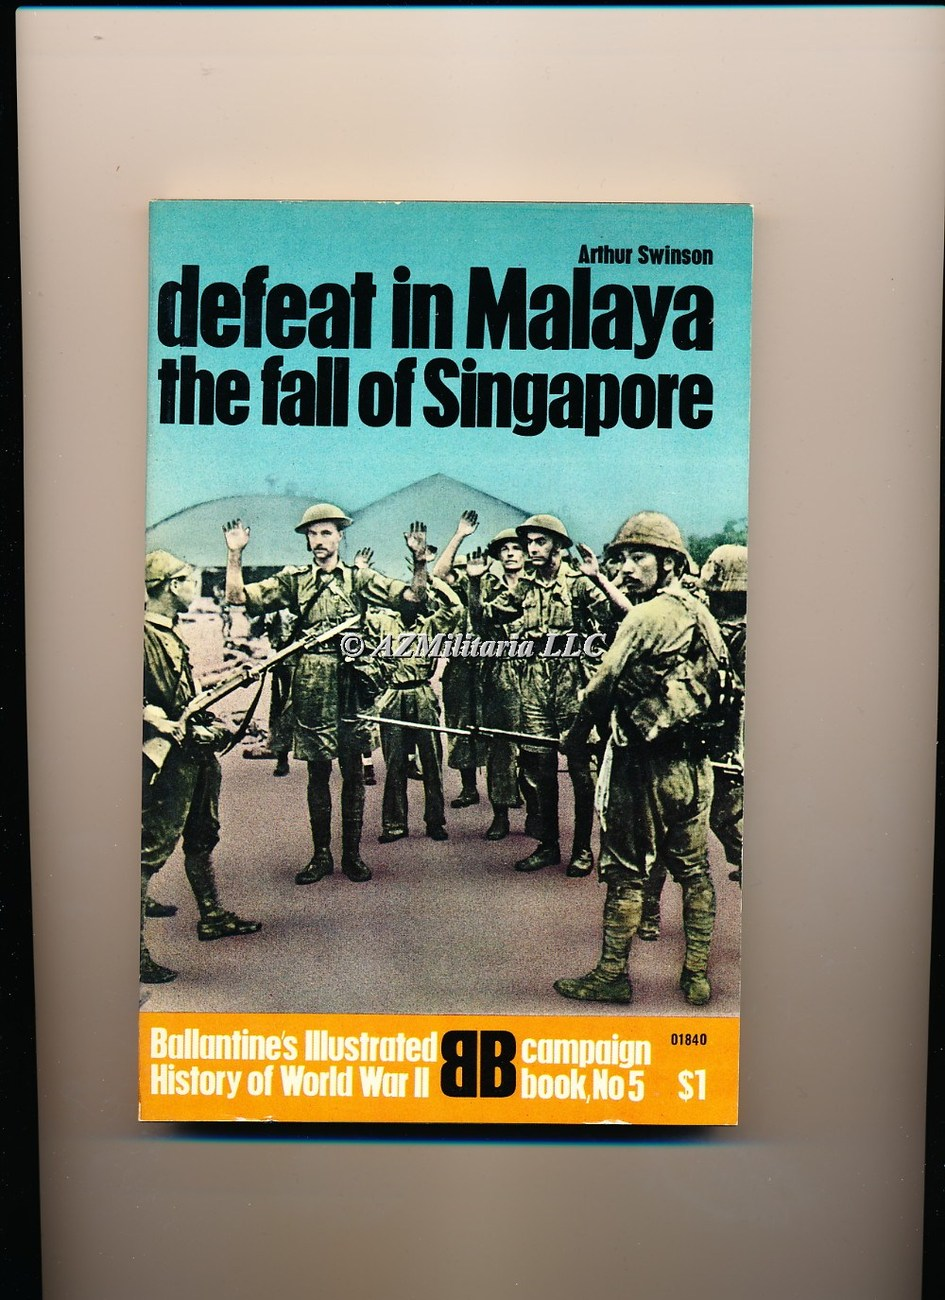 Defeat in Malaya The Fall of Singapore (Campaign Book, No 5)